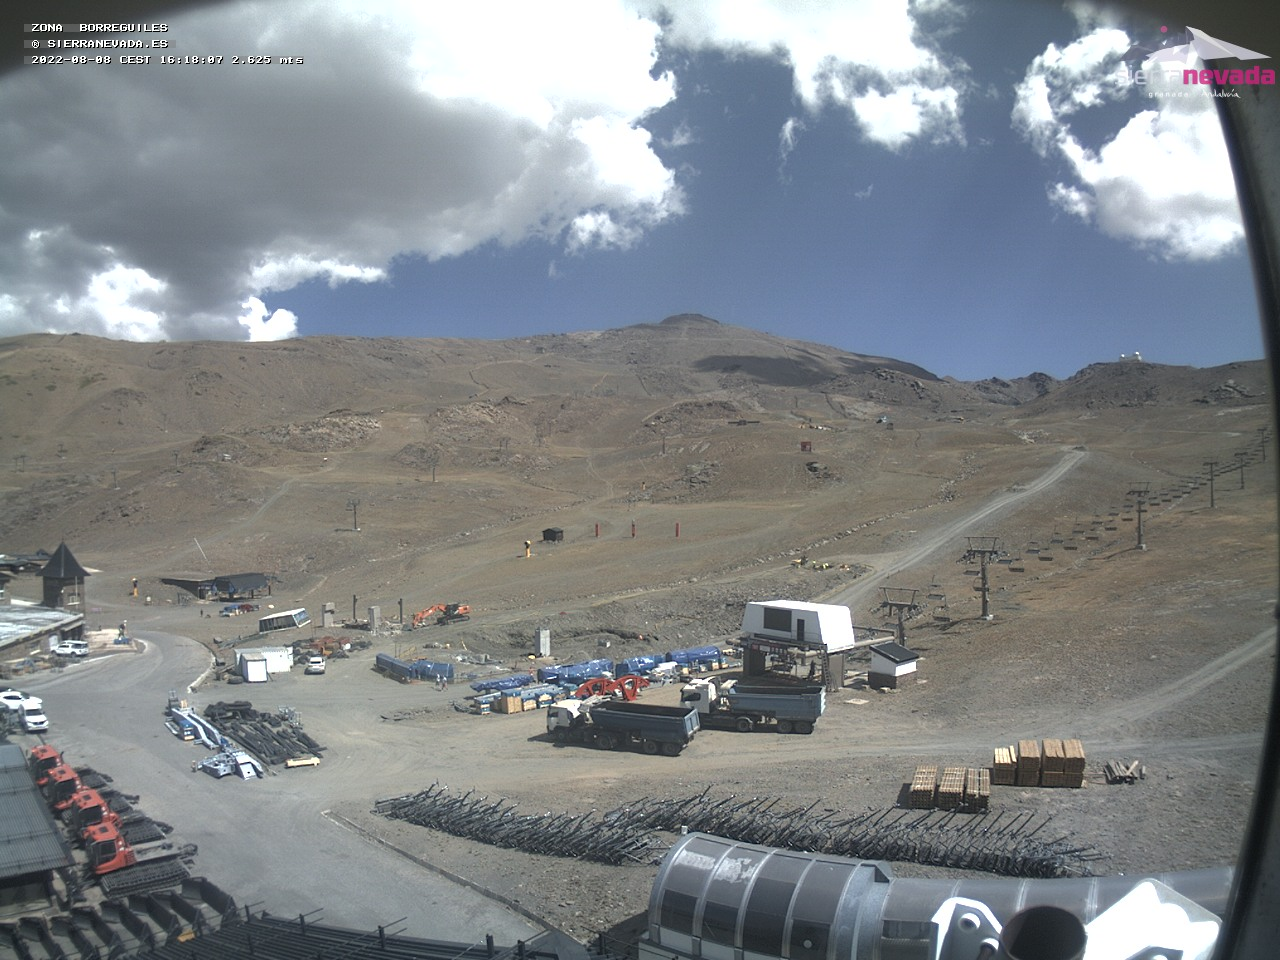 WebCam en Directo Sierra Nevada